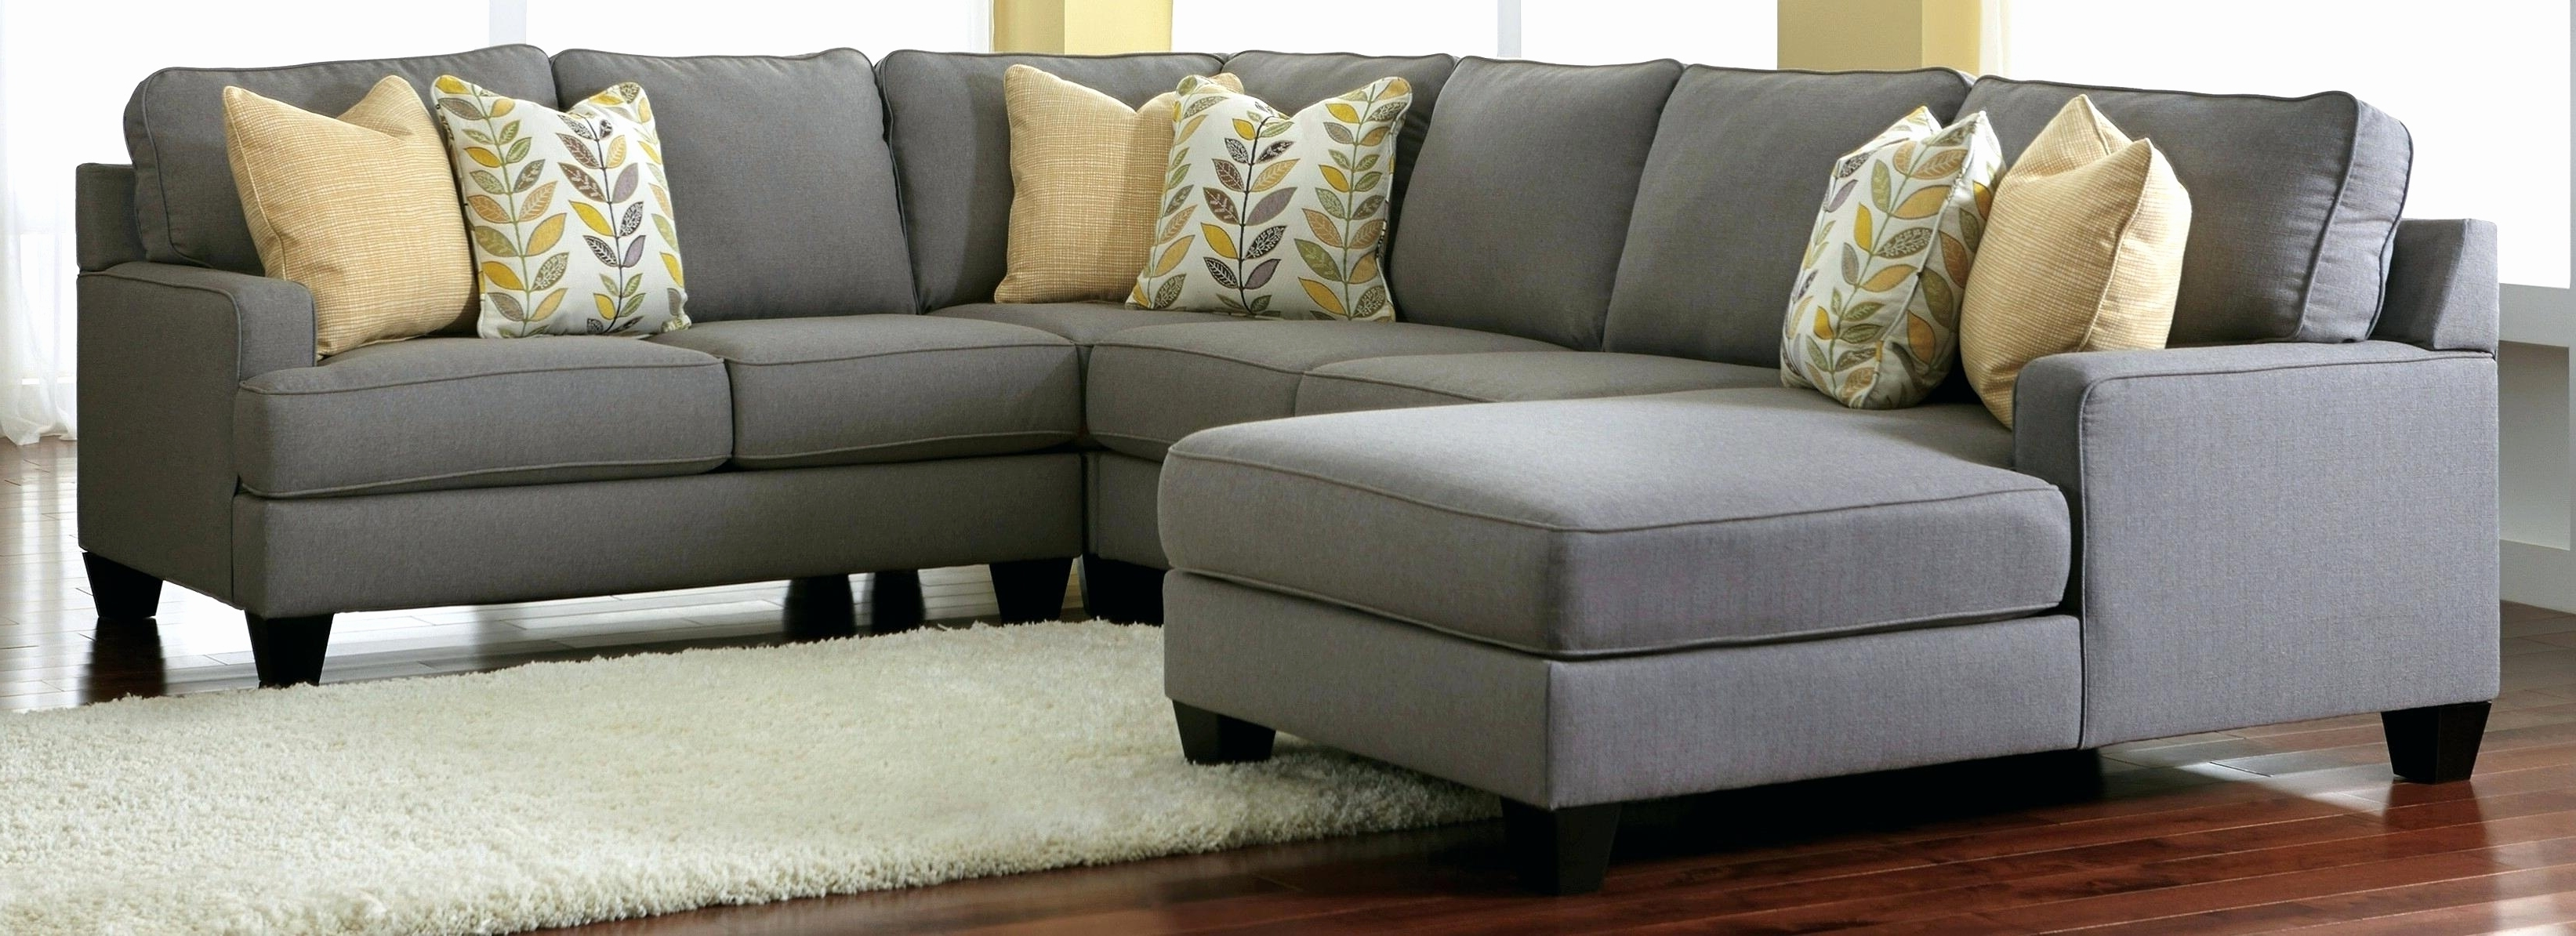 New Charcoal Grey Sectional Sofa With Chaise 2018 – Couches And In Current Gray Sectional Sofas With Chaise (View 9 of 15)